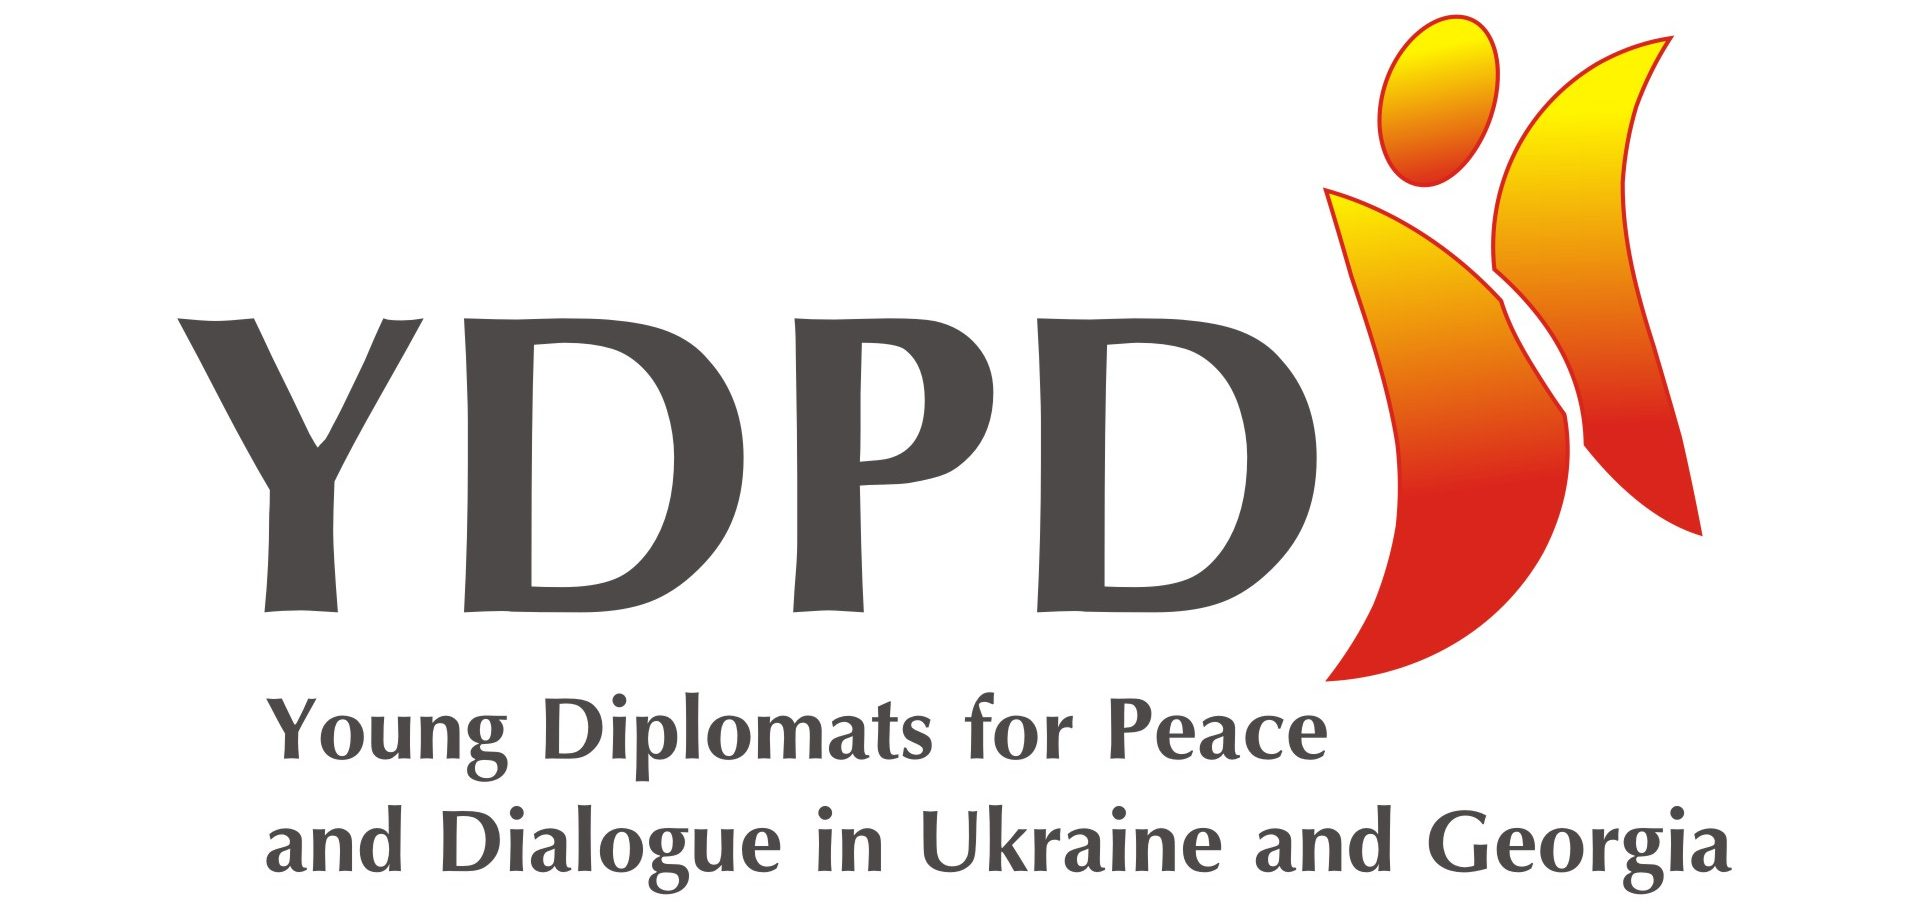 cropped-ydpd-logo-4